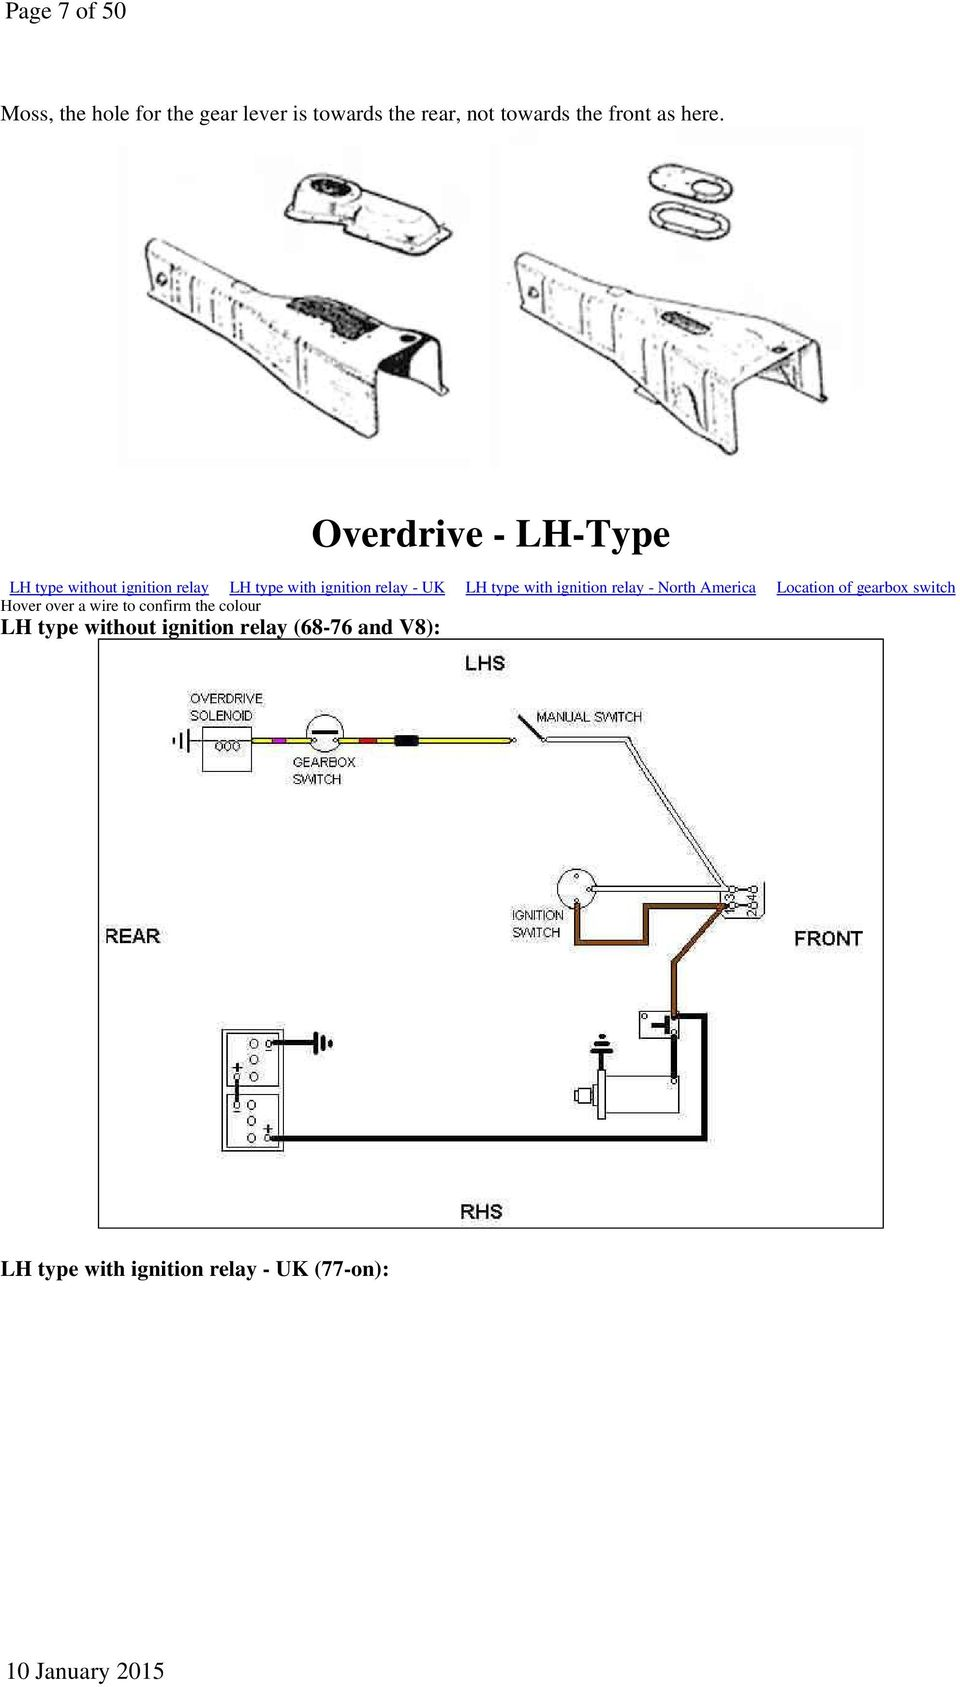 Overdrive D Type To 67 Pdf Relay Switch Ignition With North America Location Of Gearbox Hover Over A Wire